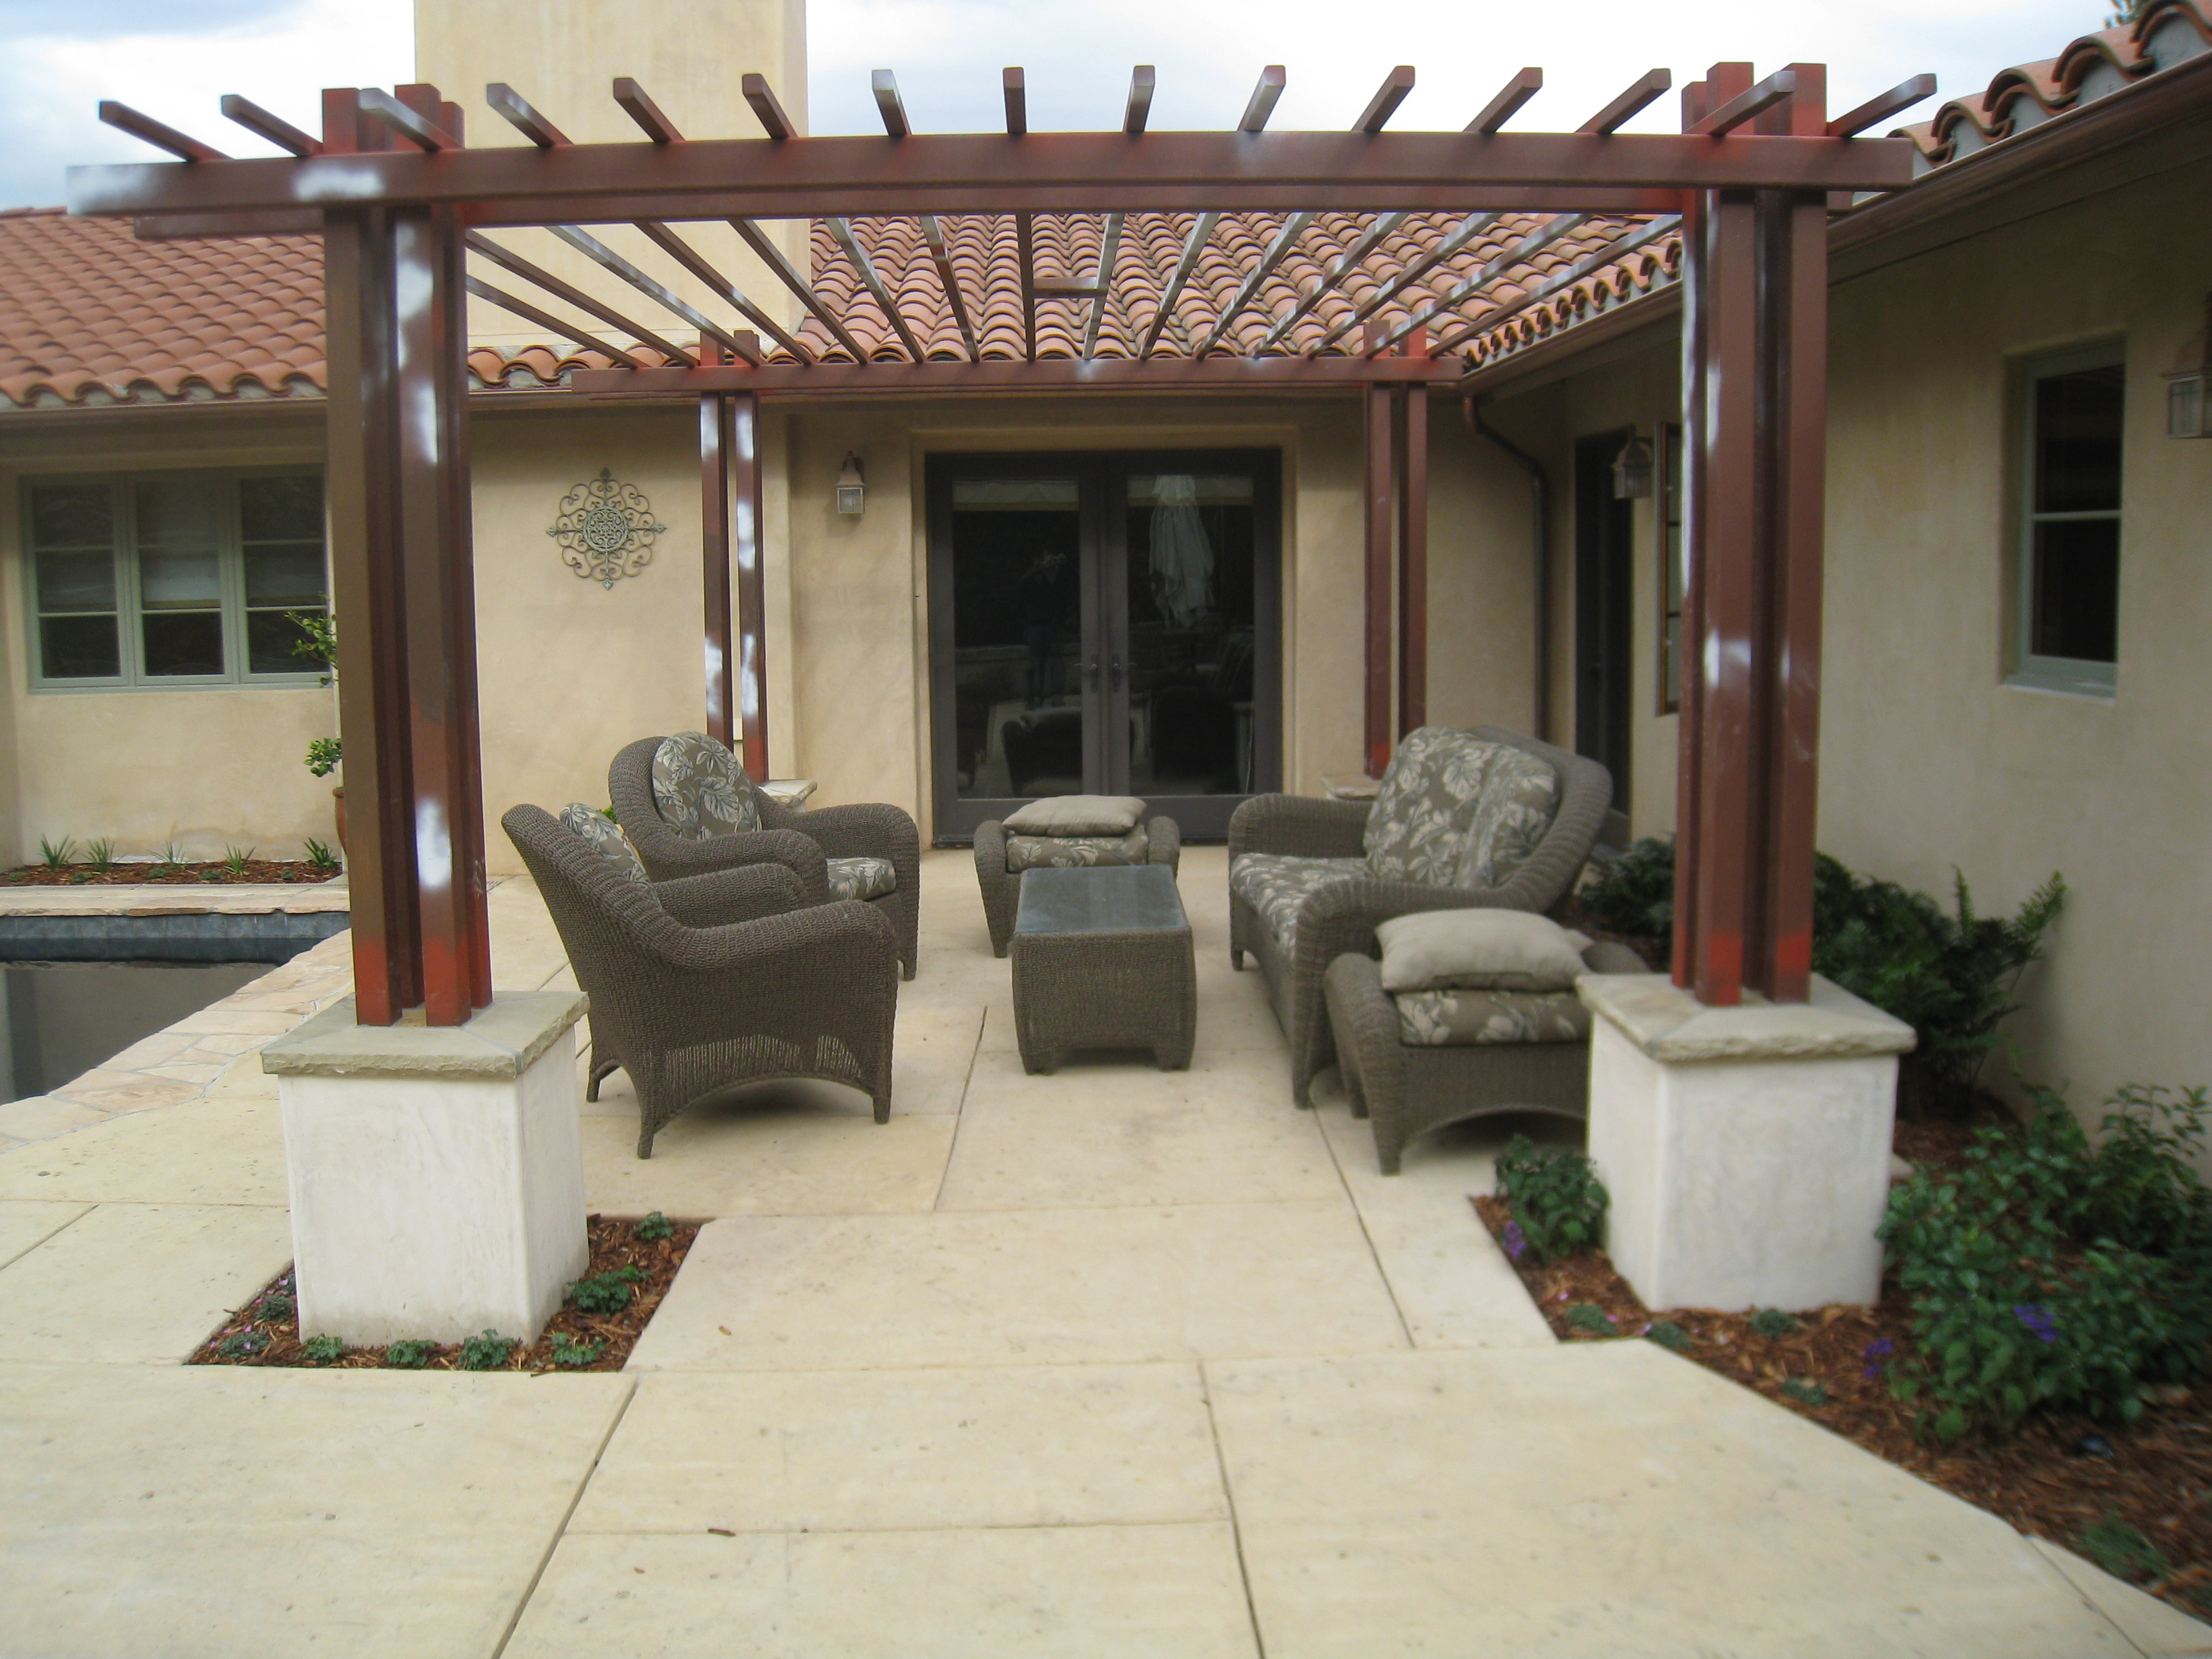 Backyard Patio Ideas in Santa Barbara Outdoor Kitchens